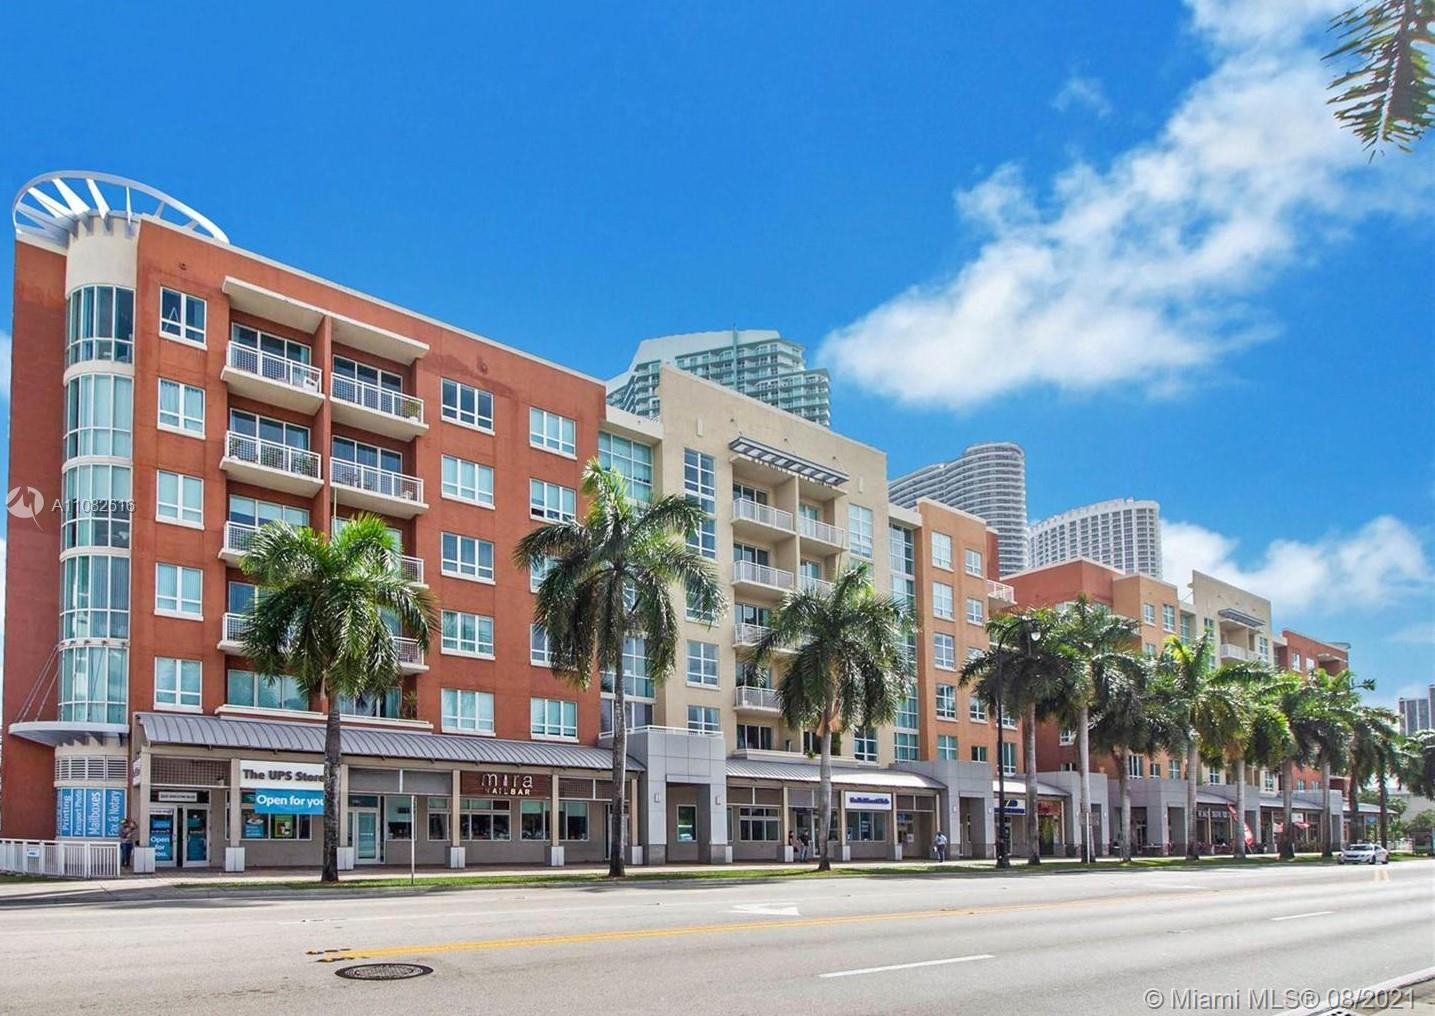 Spacious loft with 12-foot ceilings available furnished or unfurnished. Built in 2004, Cite on the B